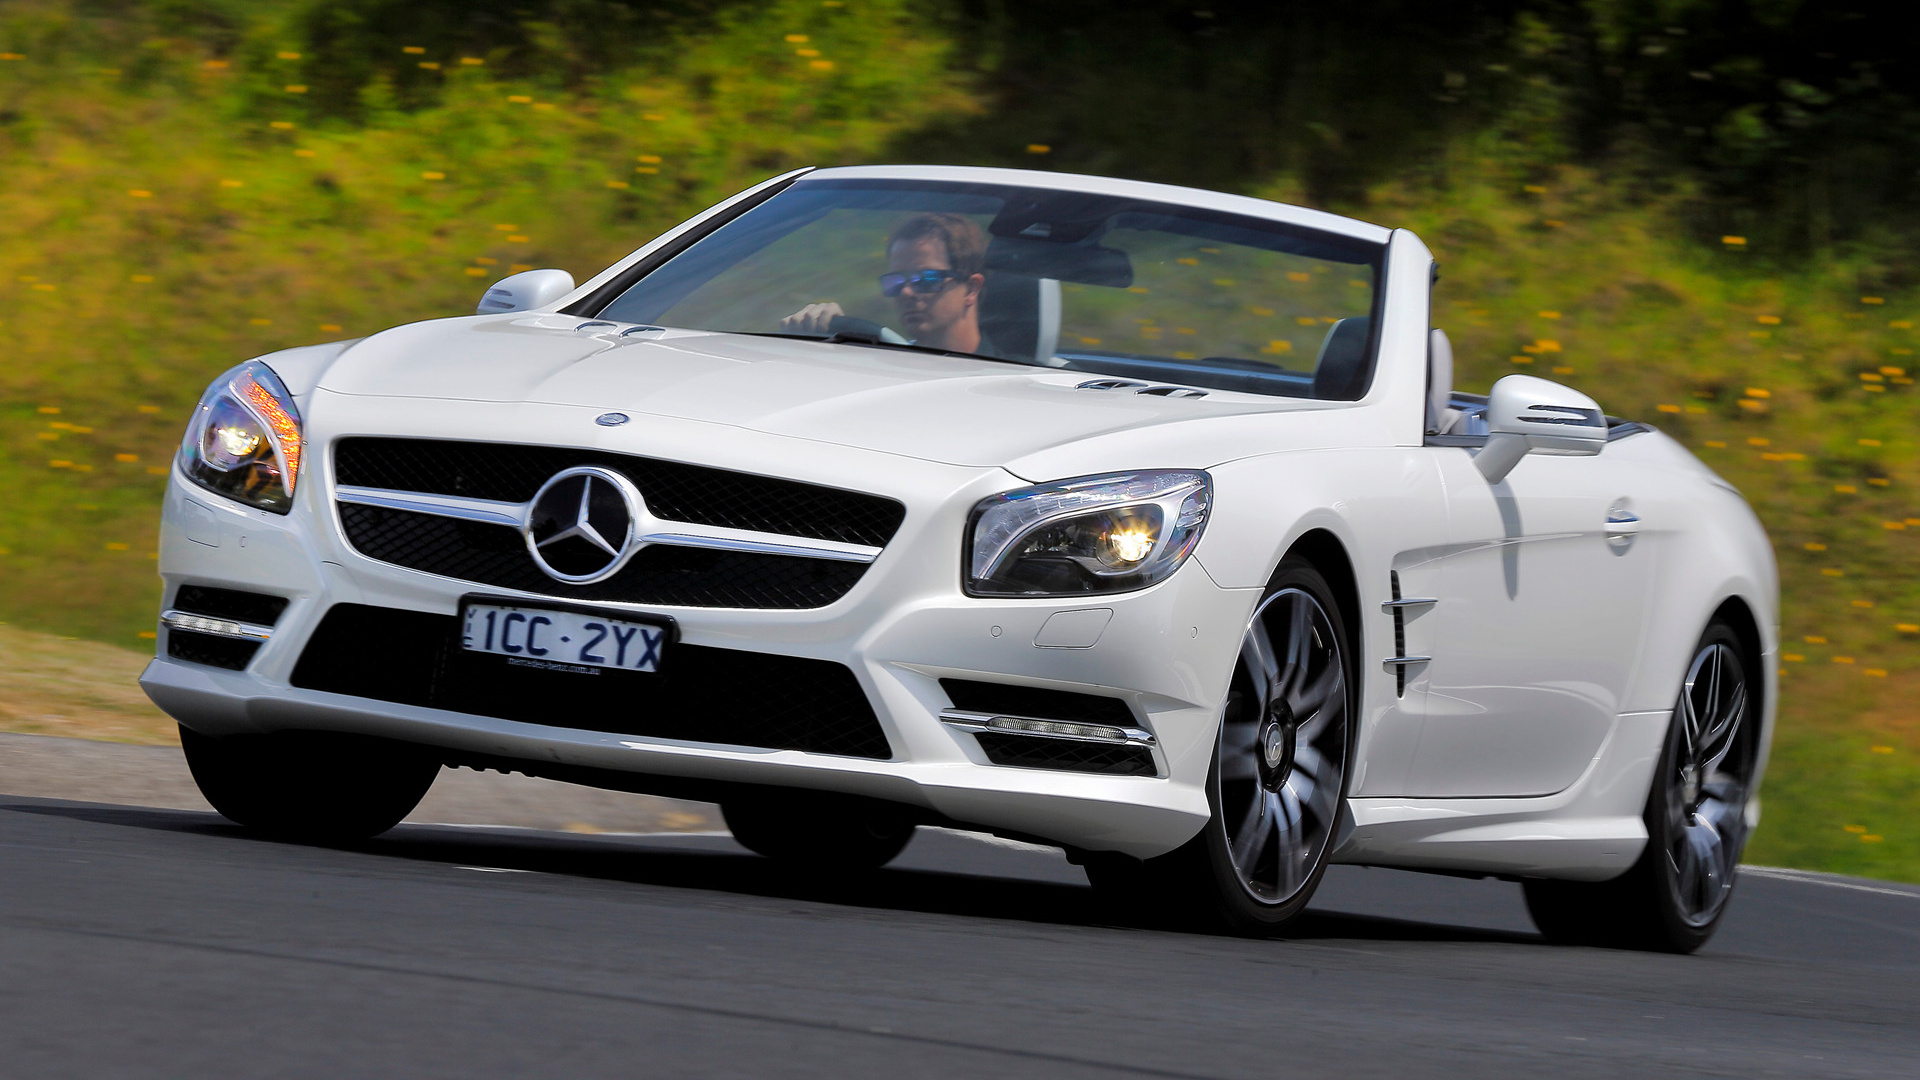 2012 mercedes benz sl class amg styling au wallpapers. Black Bedroom Furniture Sets. Home Design Ideas